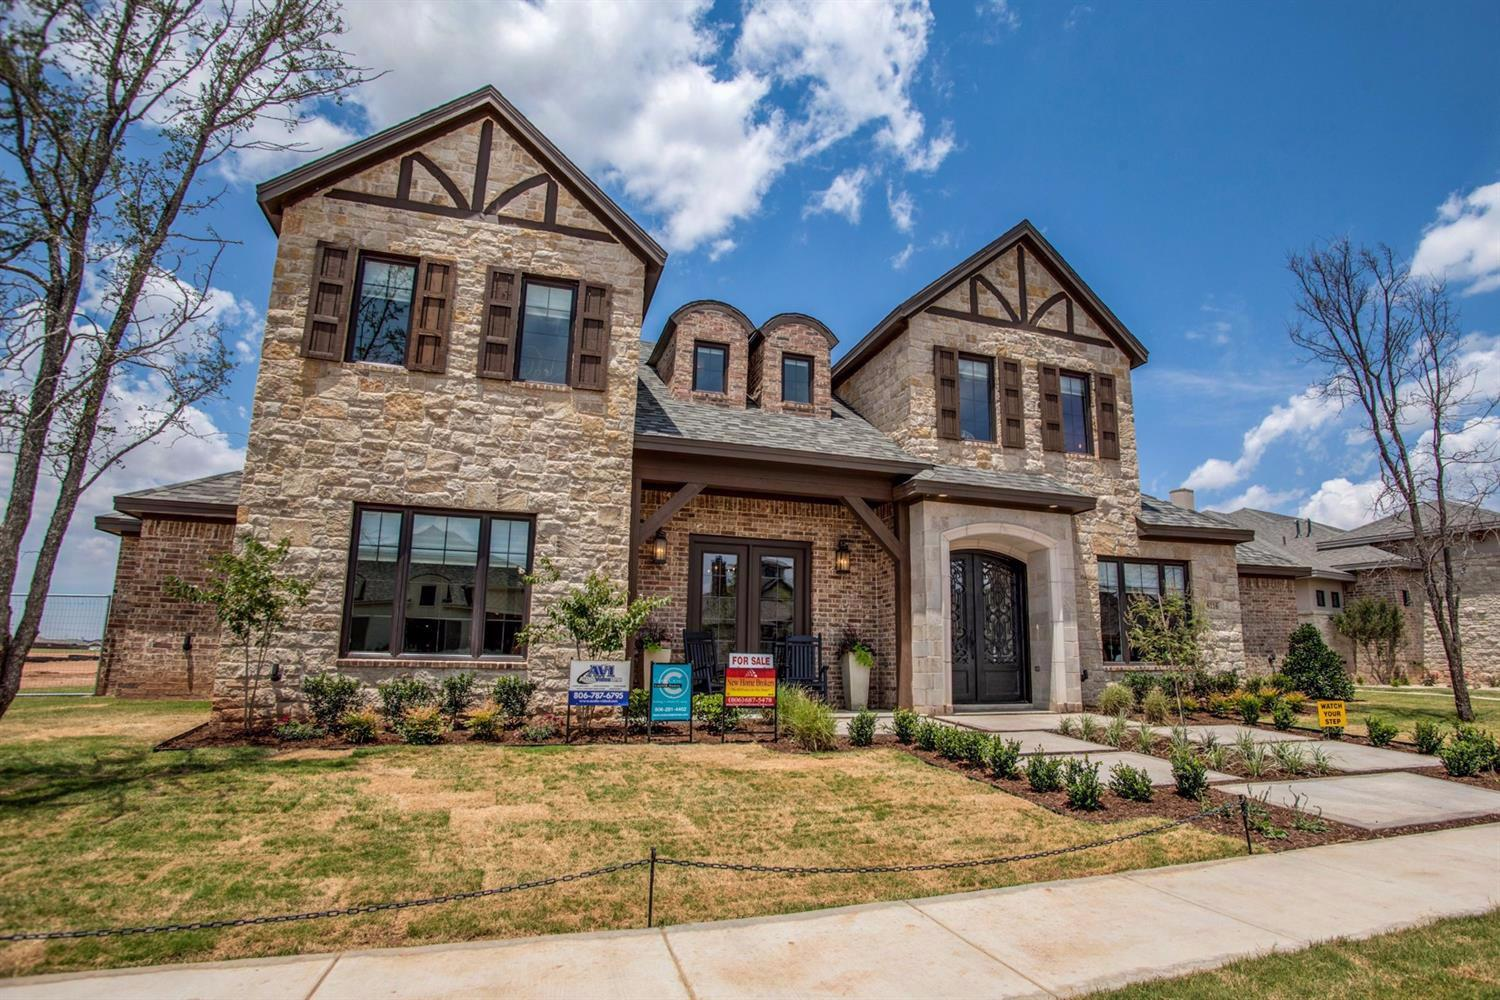 This stunning home in The Trails won Best Interior as a Parade Home in 2016.  Beautiful curb appeal as you walk up to this brick and stone home with gorgeous cedar accents.  Walk in to an open concept floor plan with light oak hardwood floors. The perfect amount of rustic touches throughout including repurposed barn wood used for the ceiling and an accent wall. The open living and kitchen area has beautiful natural light with sliding doors that lead into this fabulous backyard.  The oversized island makes the perfect gatherin place.  This home has the space you need for a family with four bedrooms, three bathrooms, a formal dining room, study and an upstairs bonus area that would make a great game or play room.  Complete with a mud room, safe room, big covered patio with built-in grill, garden area in corner of yard, and lots of entertaining space! Welcome home!